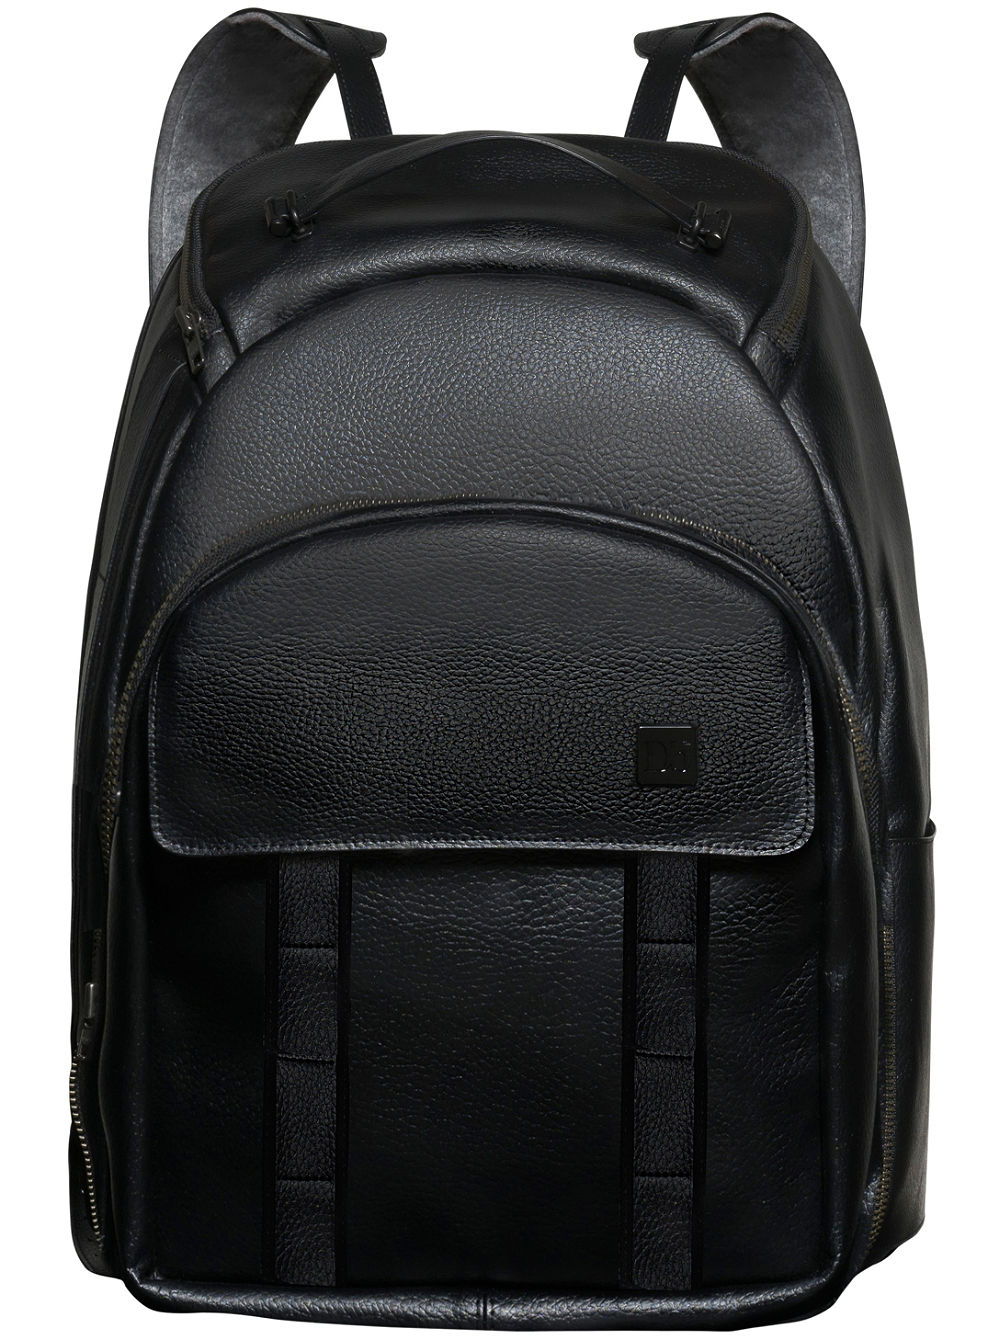 329a4491f Buy douchebags The Ace Backpack online at Blue Tomato